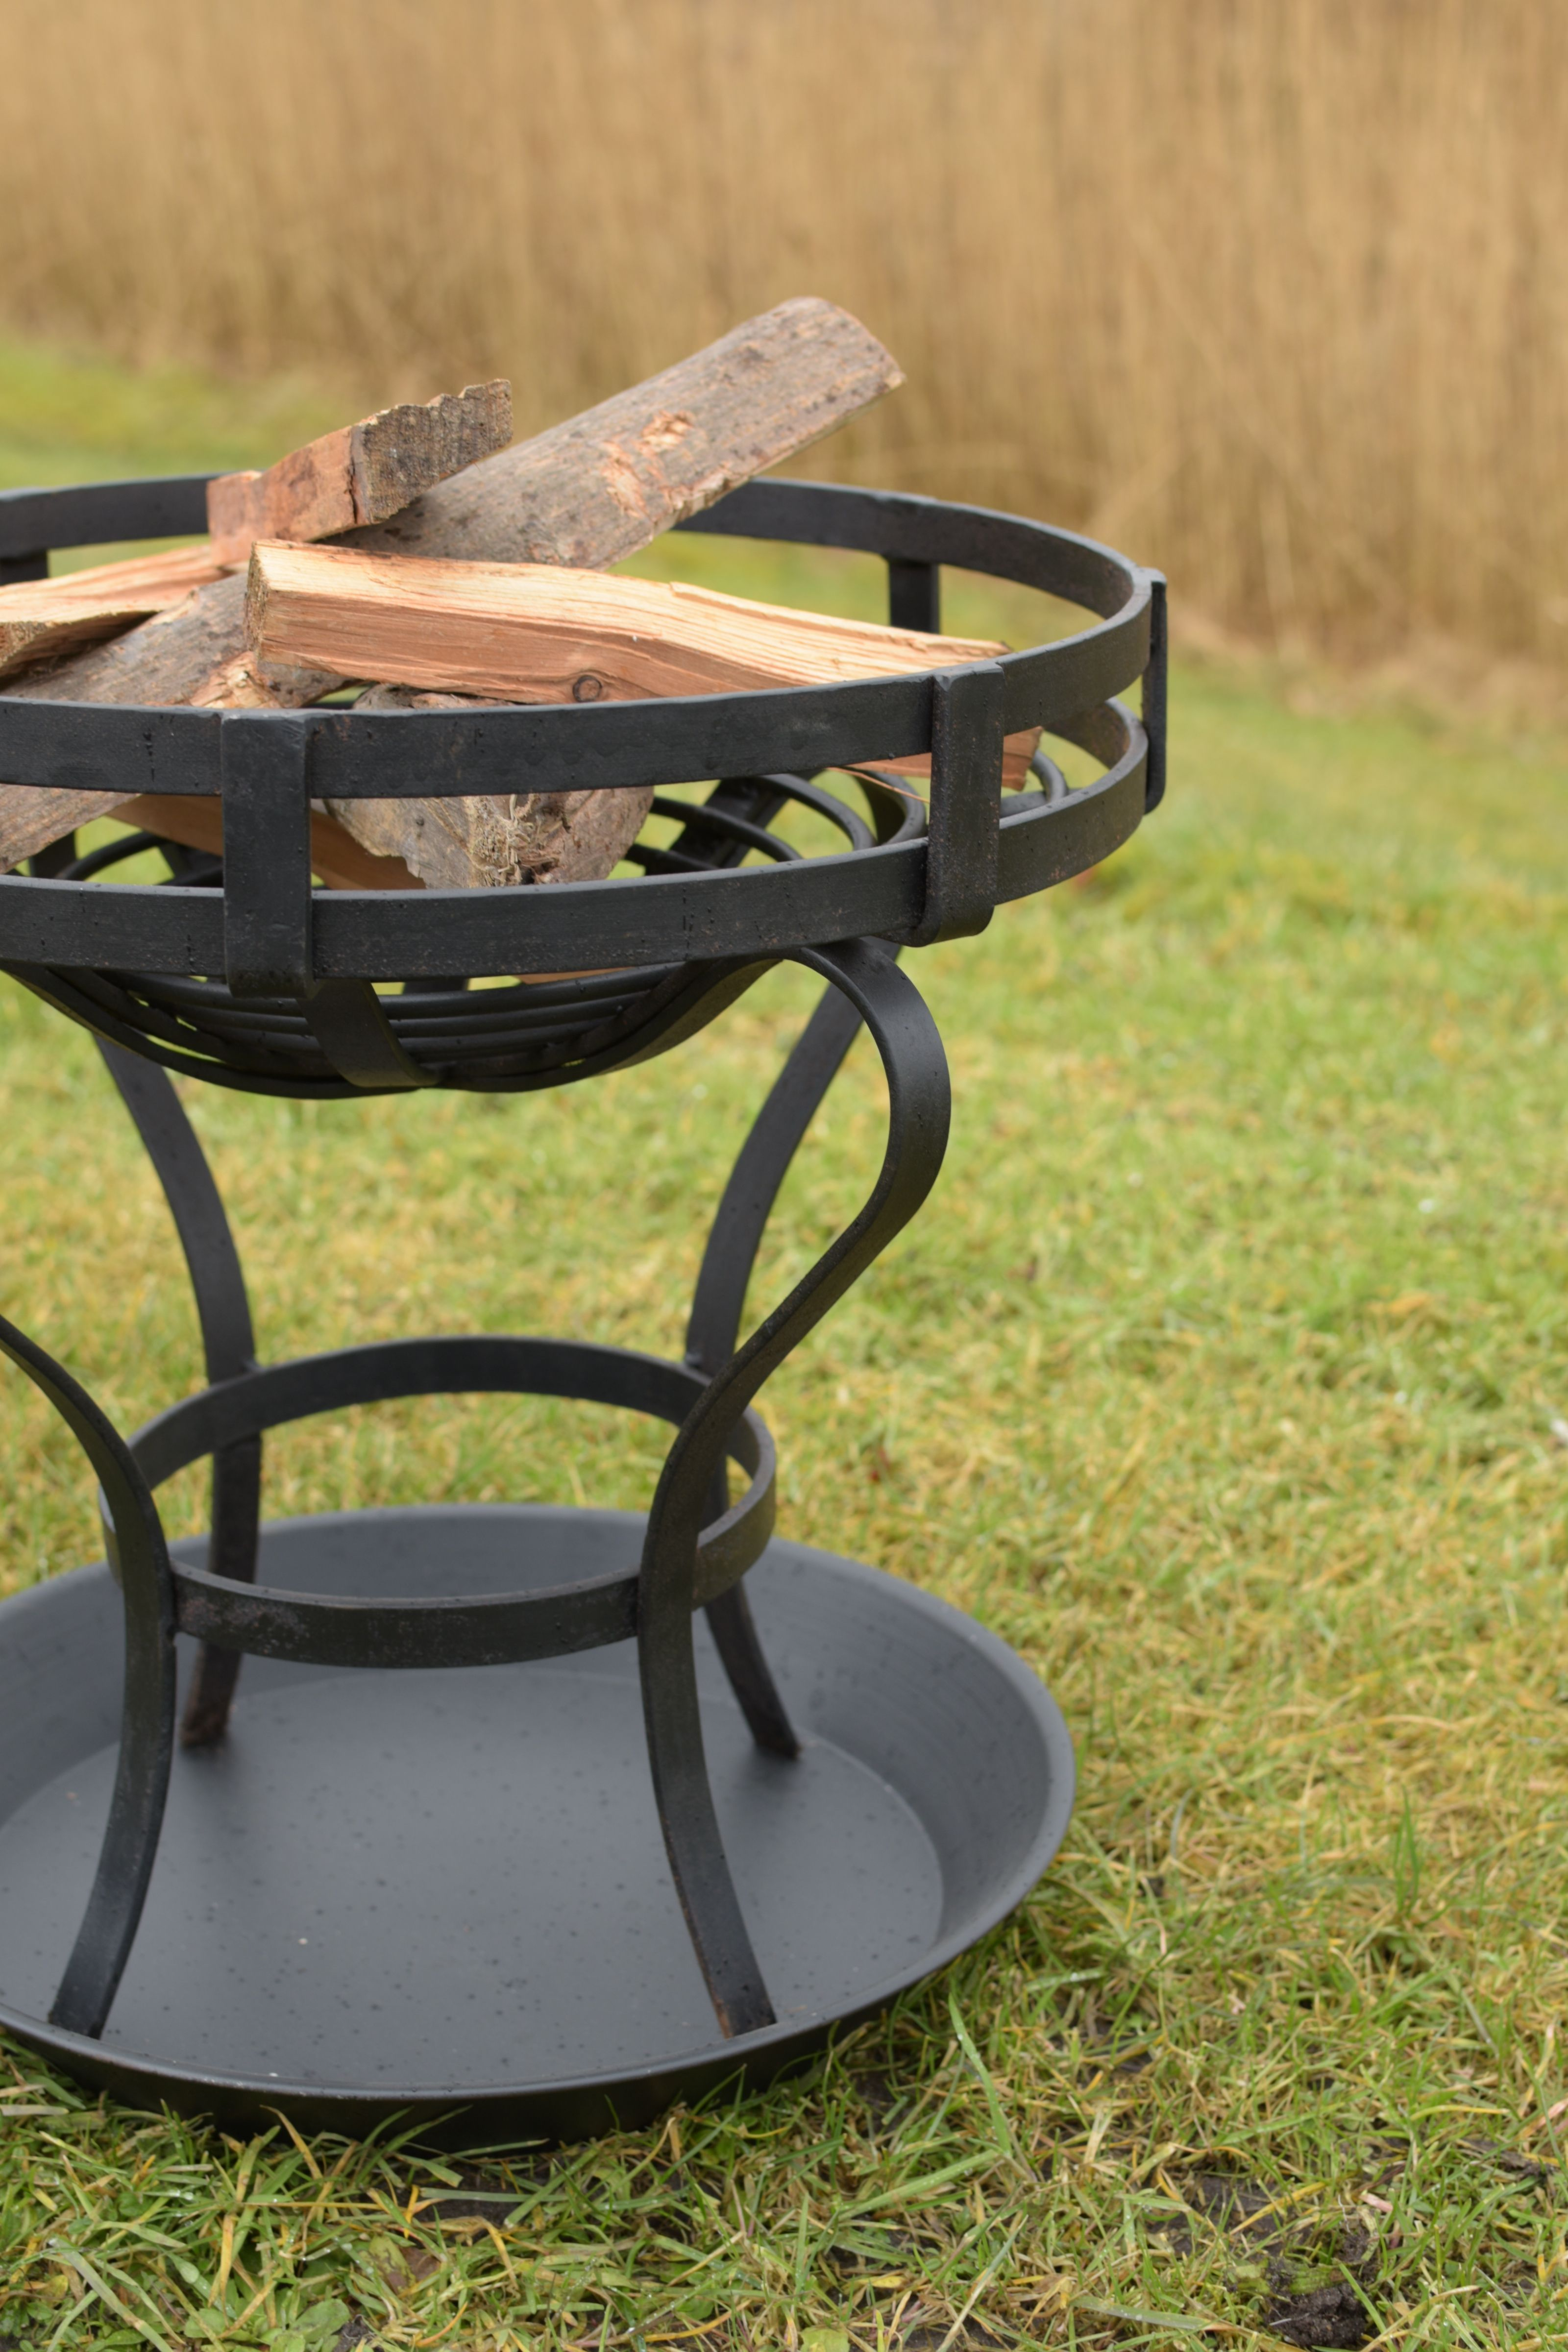 Feuerkorb Mit Grill Fire Pit With Ground Sheet Click For More Info Not Only